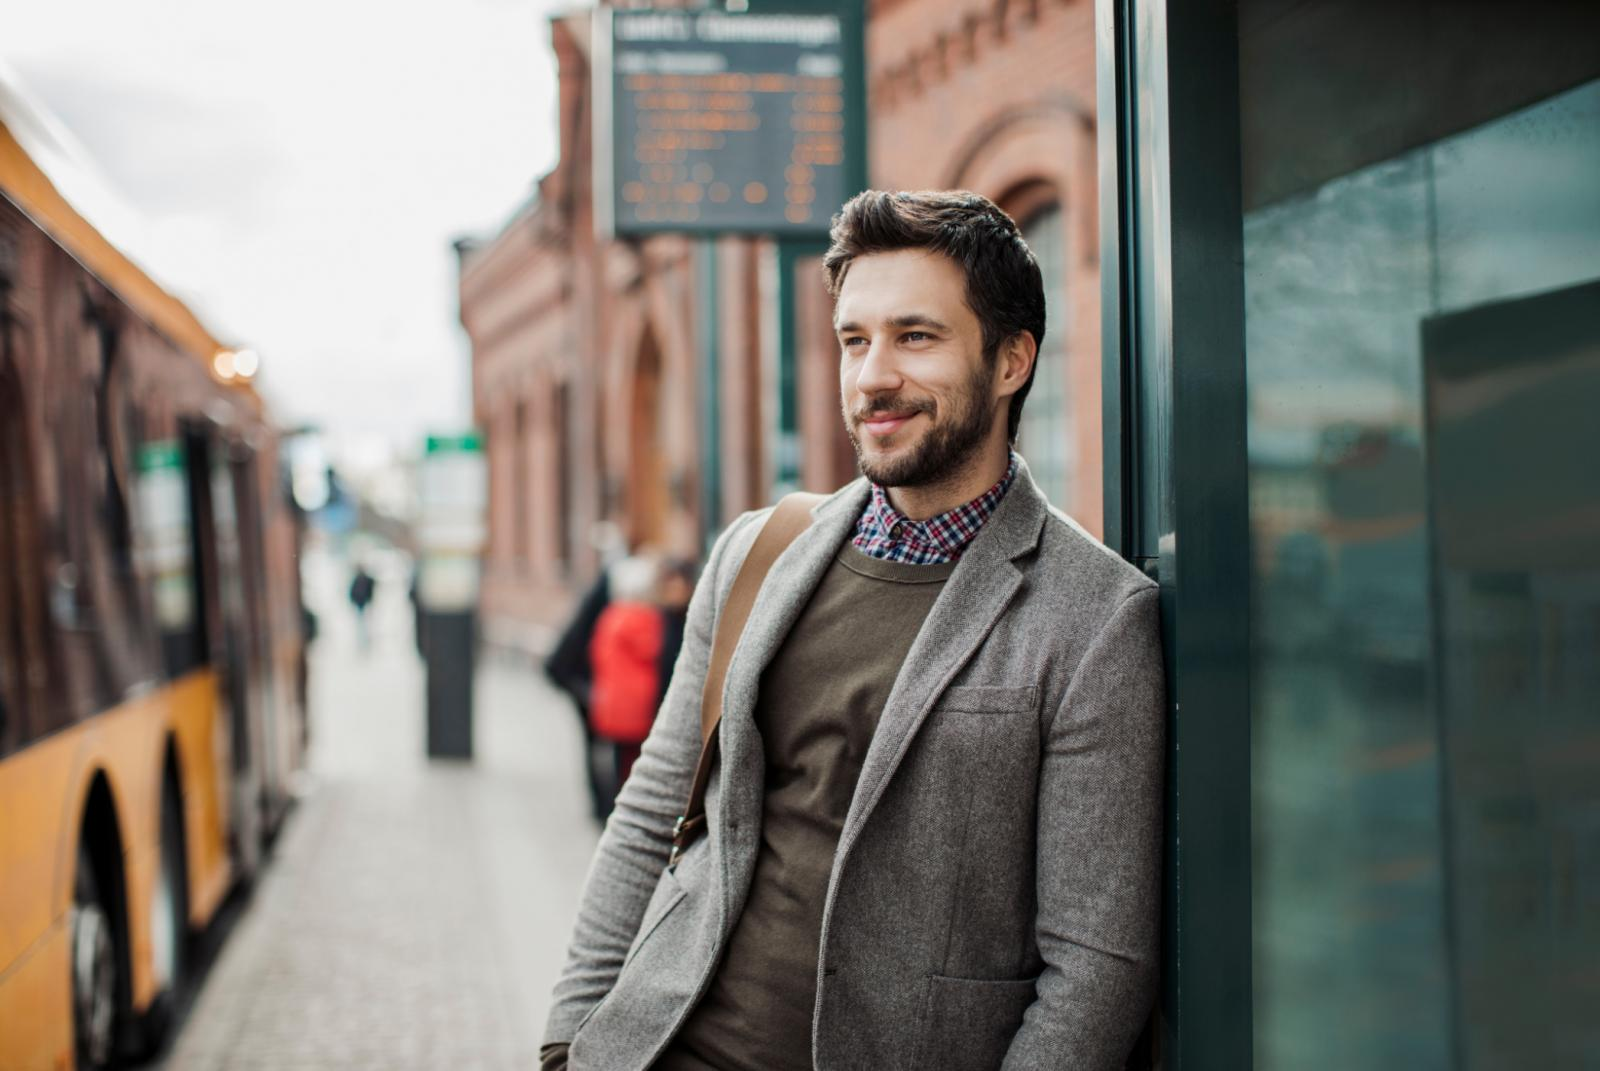 Man with a beard standing casually at a bus stop